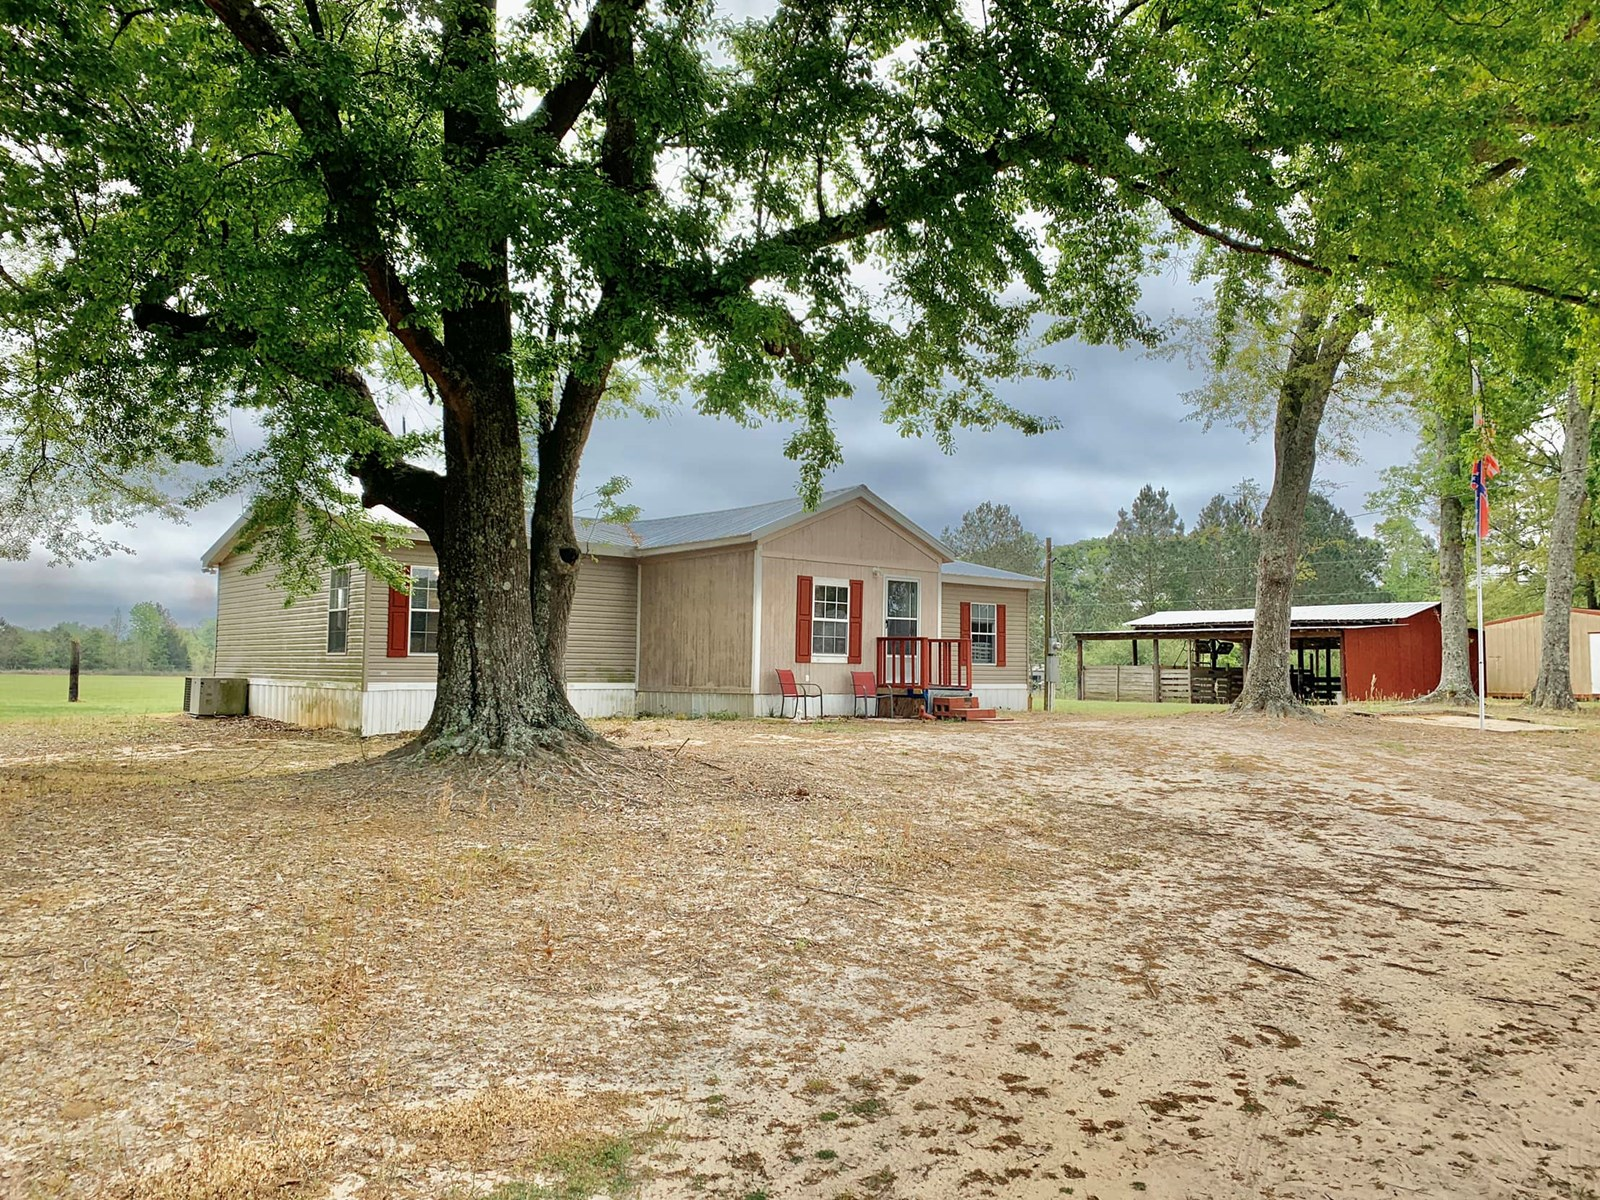 Mini Farm - Home & 4ac - Horse Barn - S of Hartford Alabama